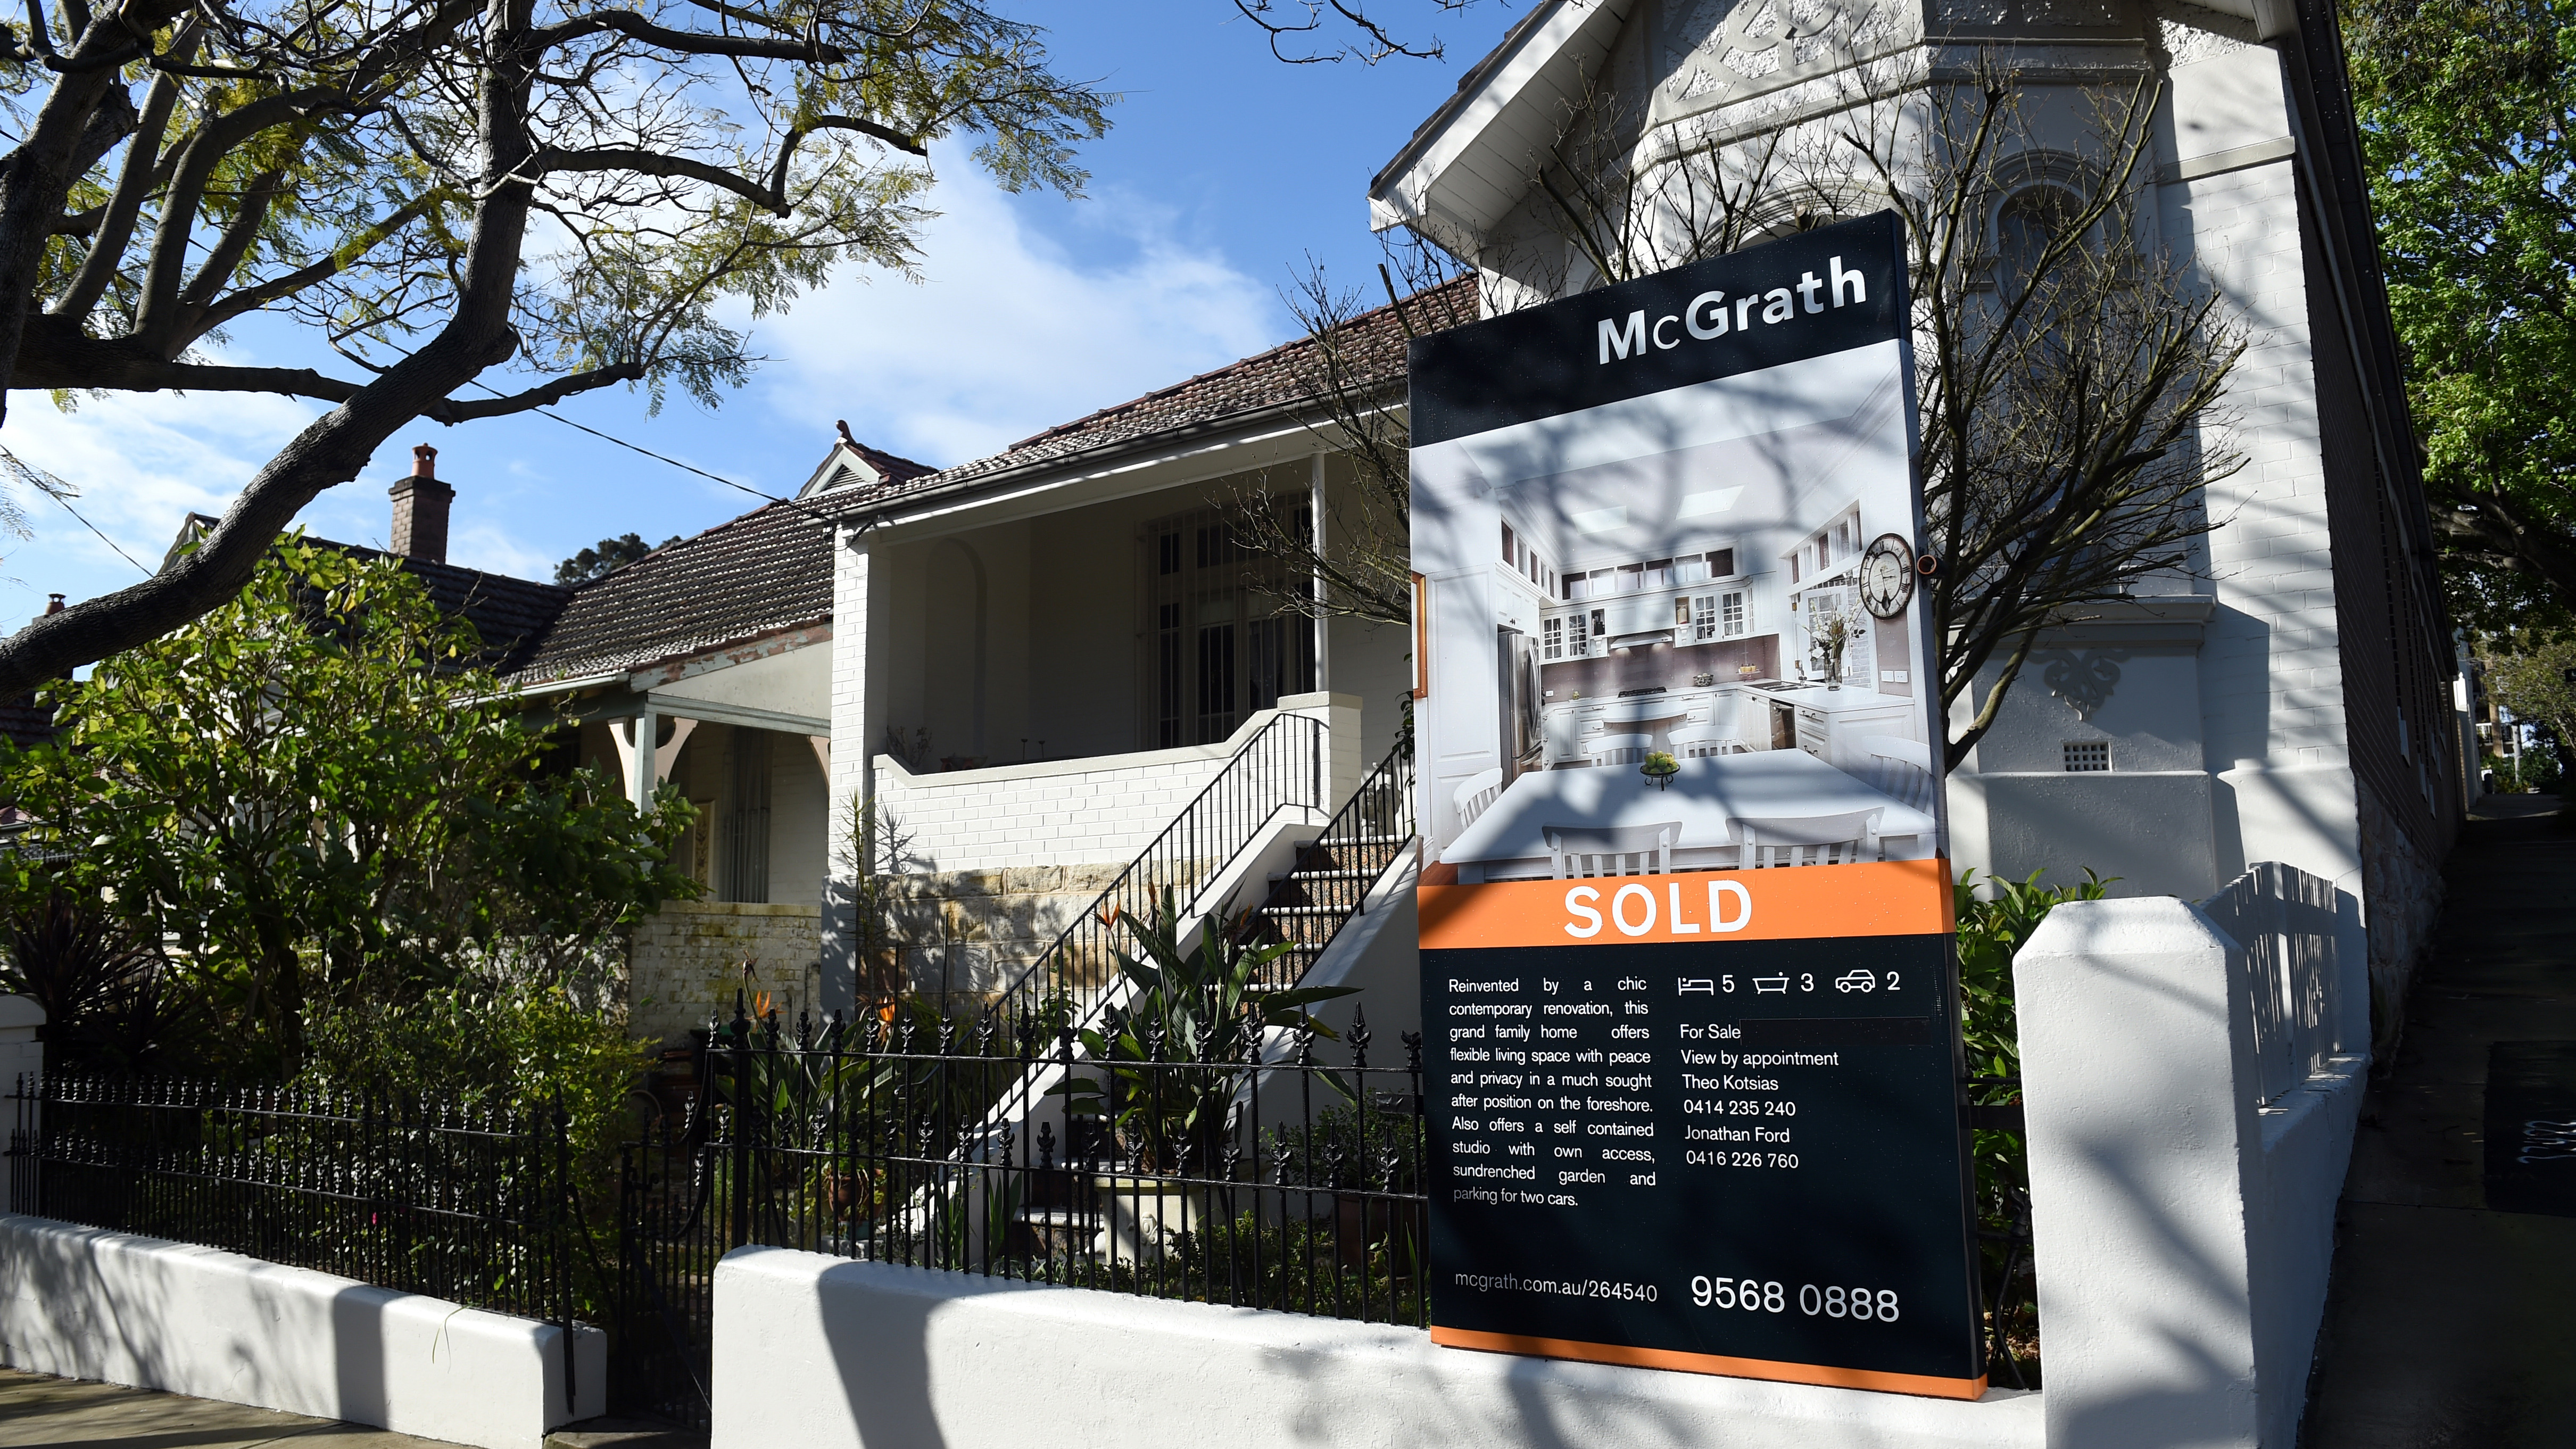 Median house prices in Sydney and Melbourne rise again